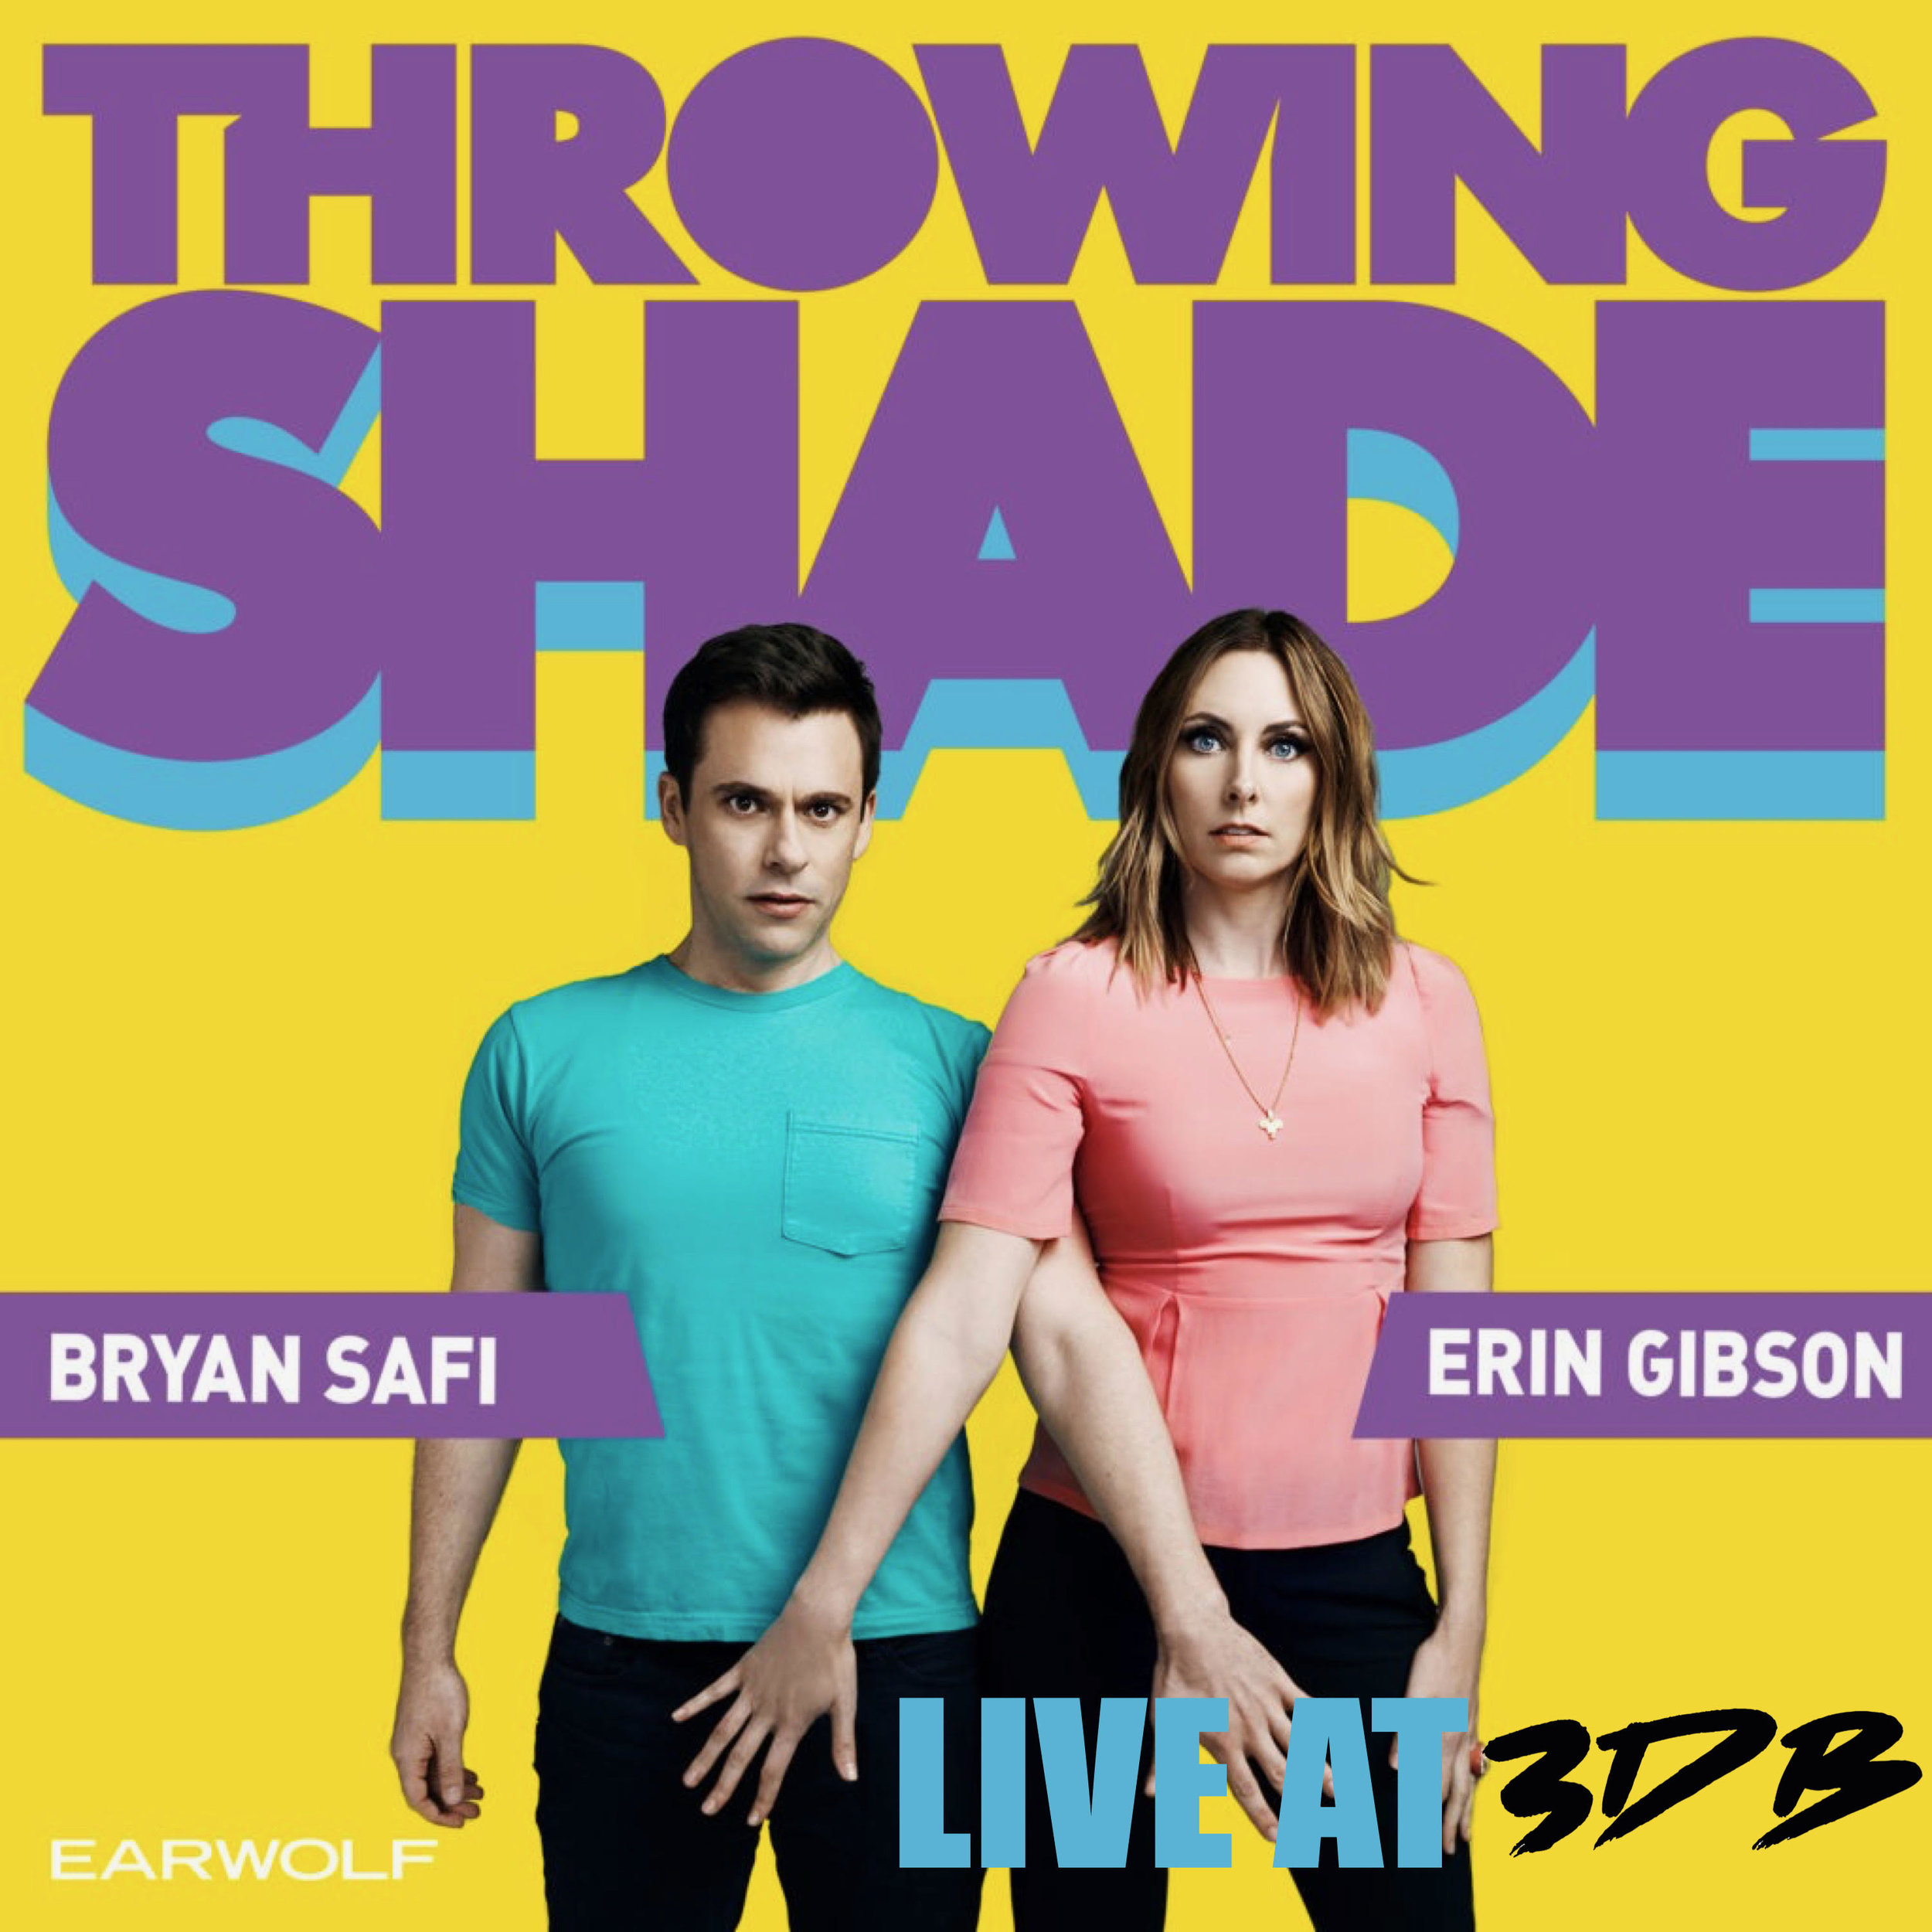 "Throwing Shade is a weekly comedy podcast which premiered based on discussions of women's rights, LGBTQ rights, progressive politics and pop culture, hosted by Erin Gibson (a.k.a. ""Feminasty"") and Bryan Safi (a.k.a. ""Homosensual""). Gibson and Safi are ""equal-opportunity offenders,"" and their comedic repartee frequently features adult topics and a politically incorrect sense of humor, even as they explore serious cultural and political issues."